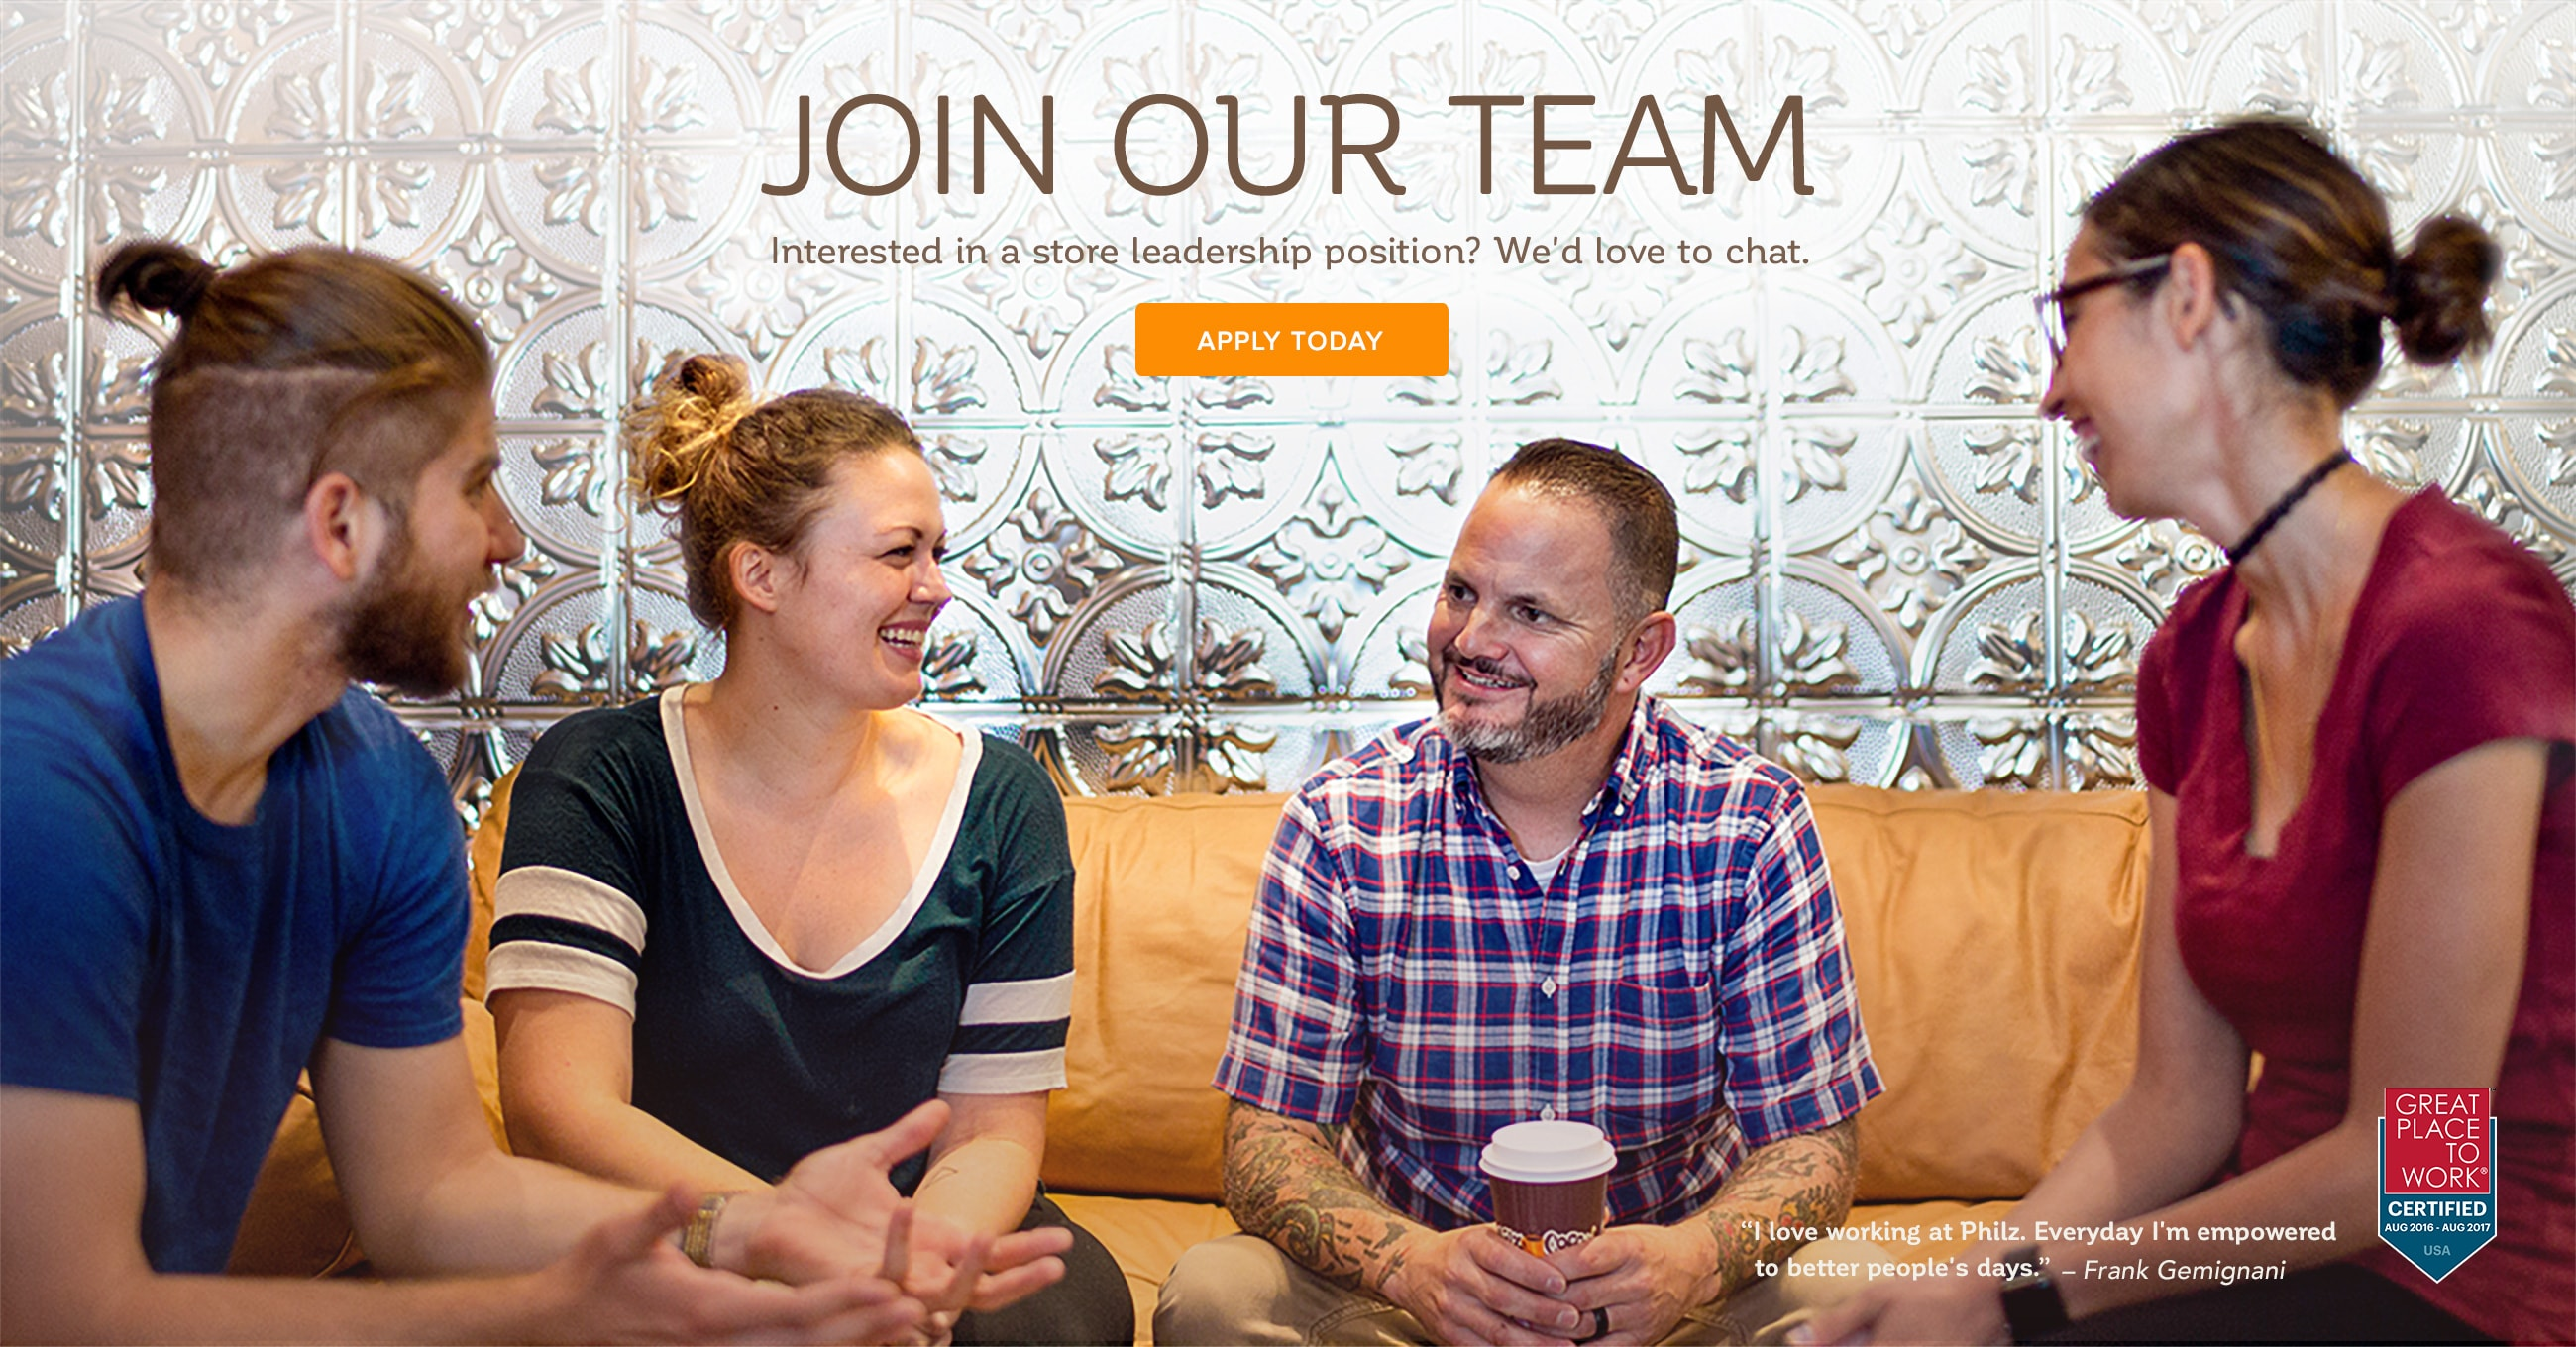 Interested in a store leadership position? We'd love to chat.